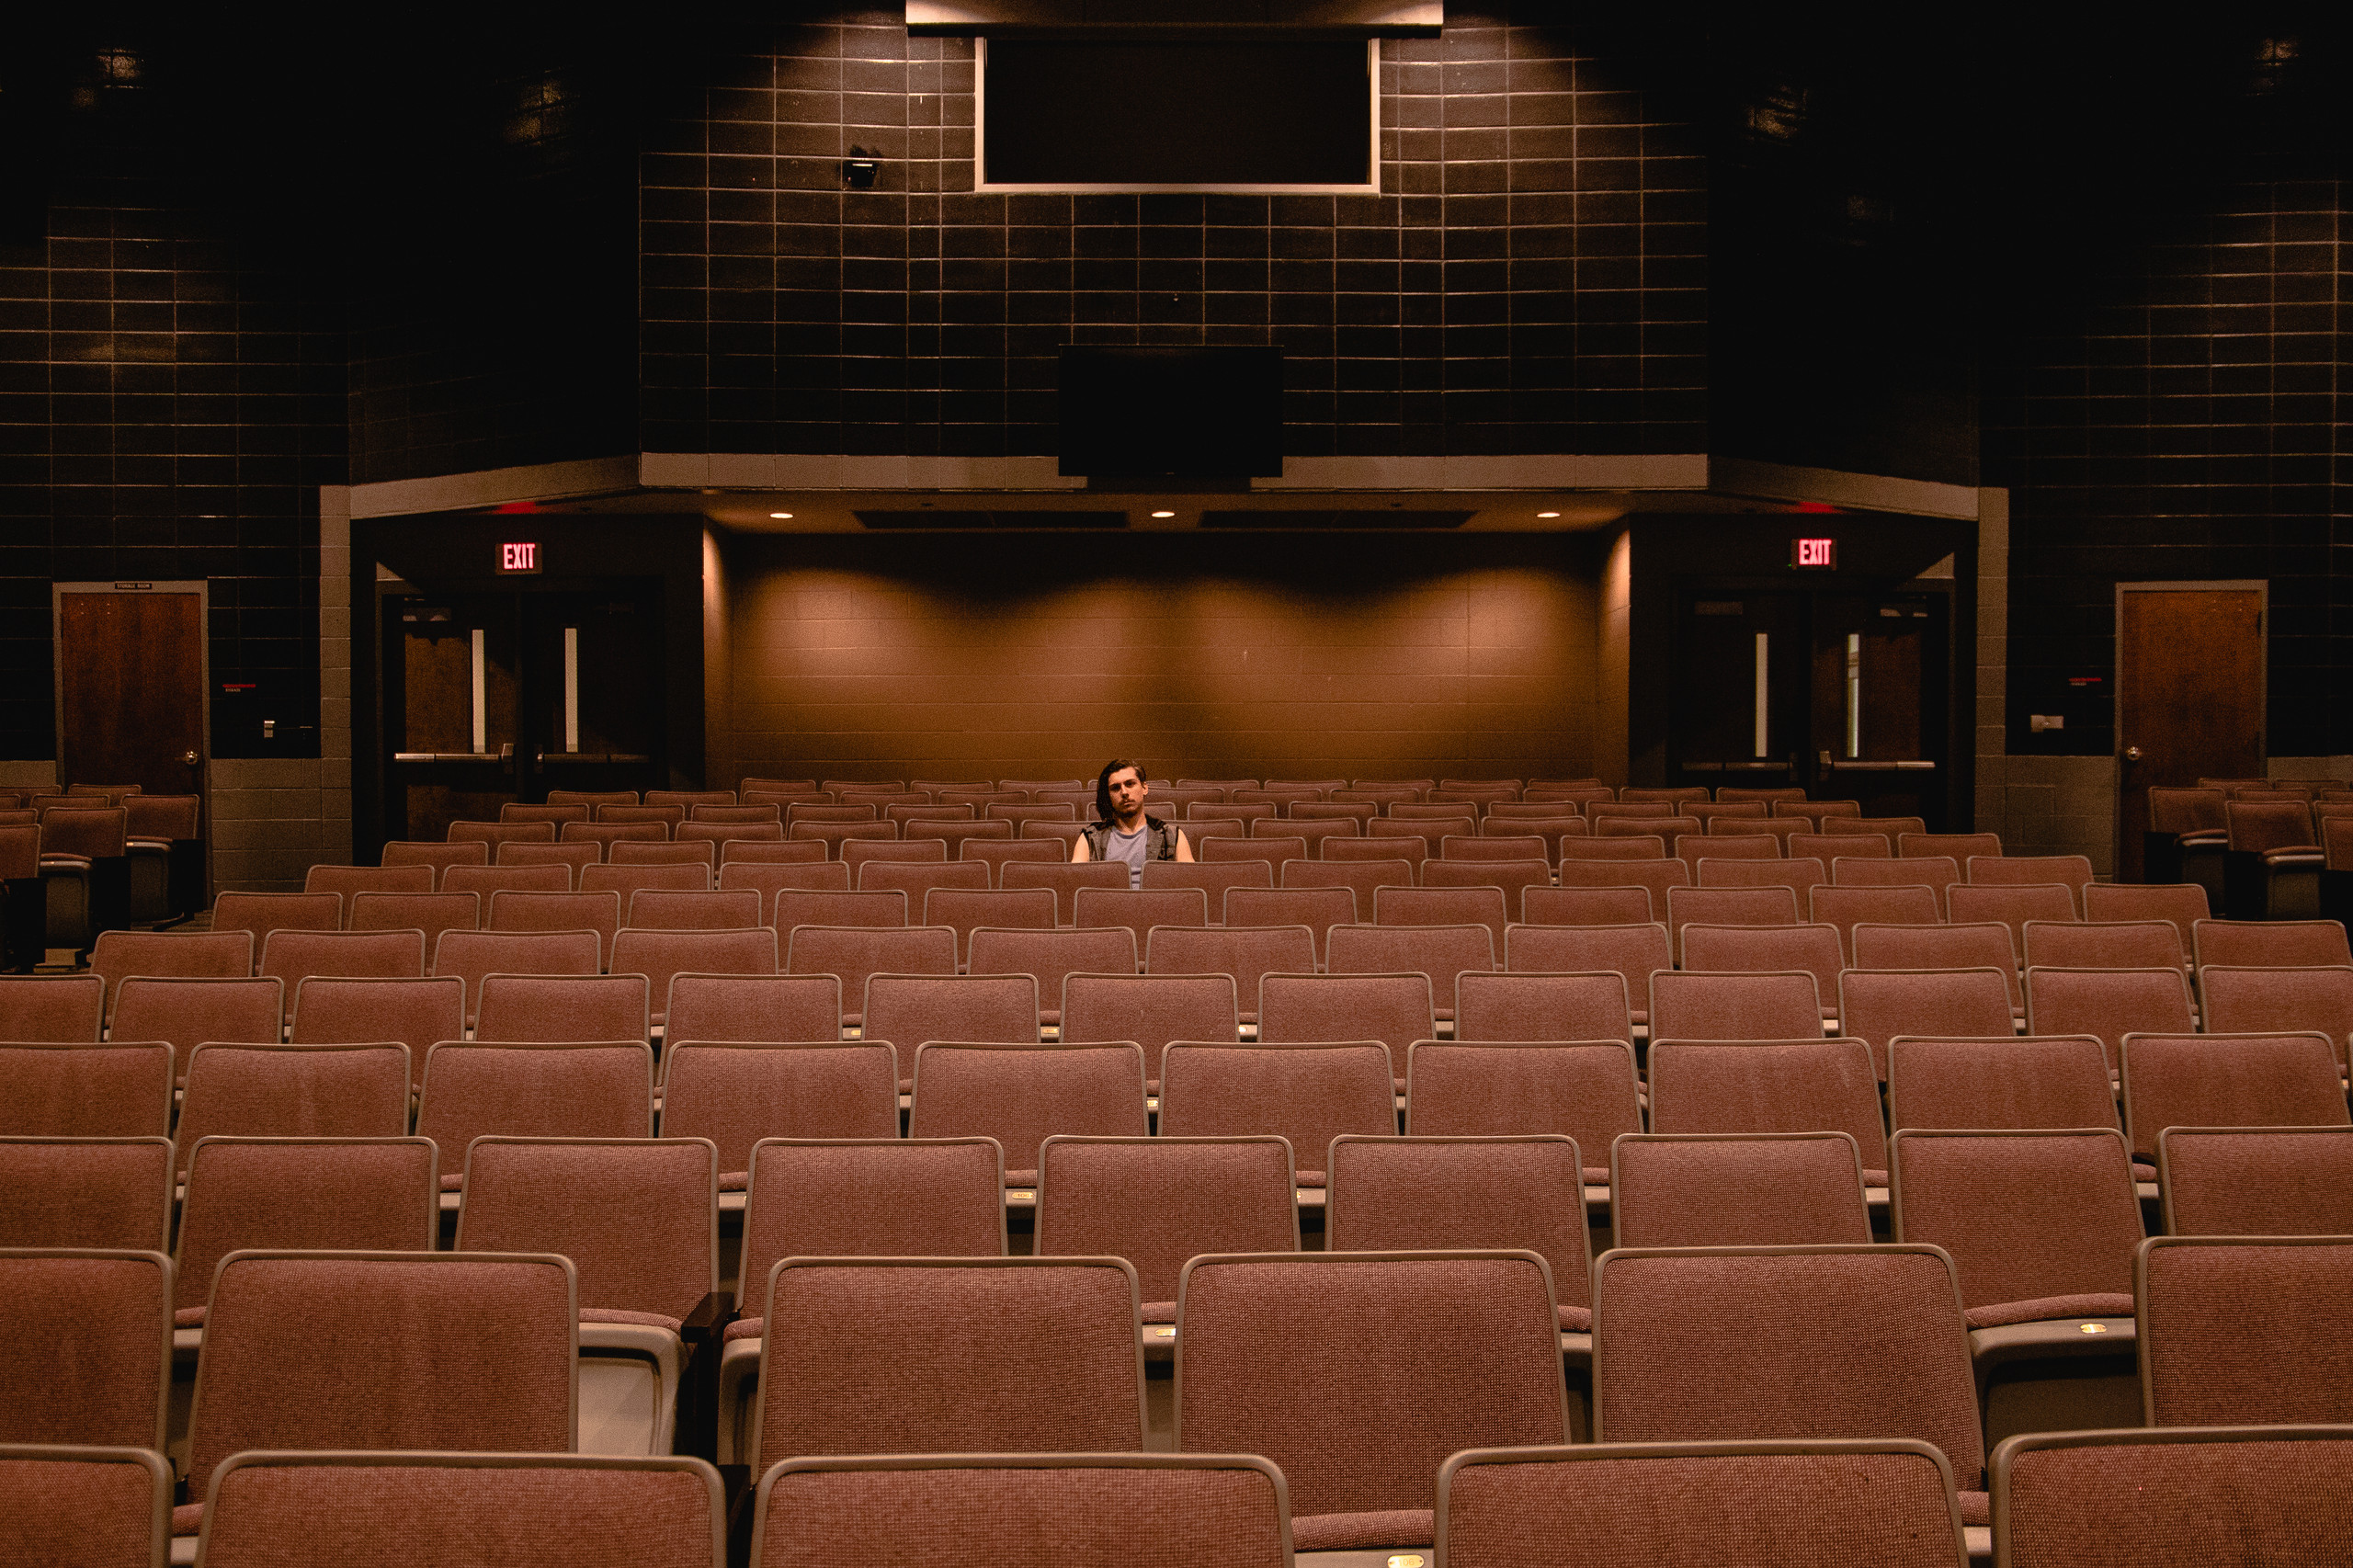 A high school senior boy sits in the middle of an empty theater.